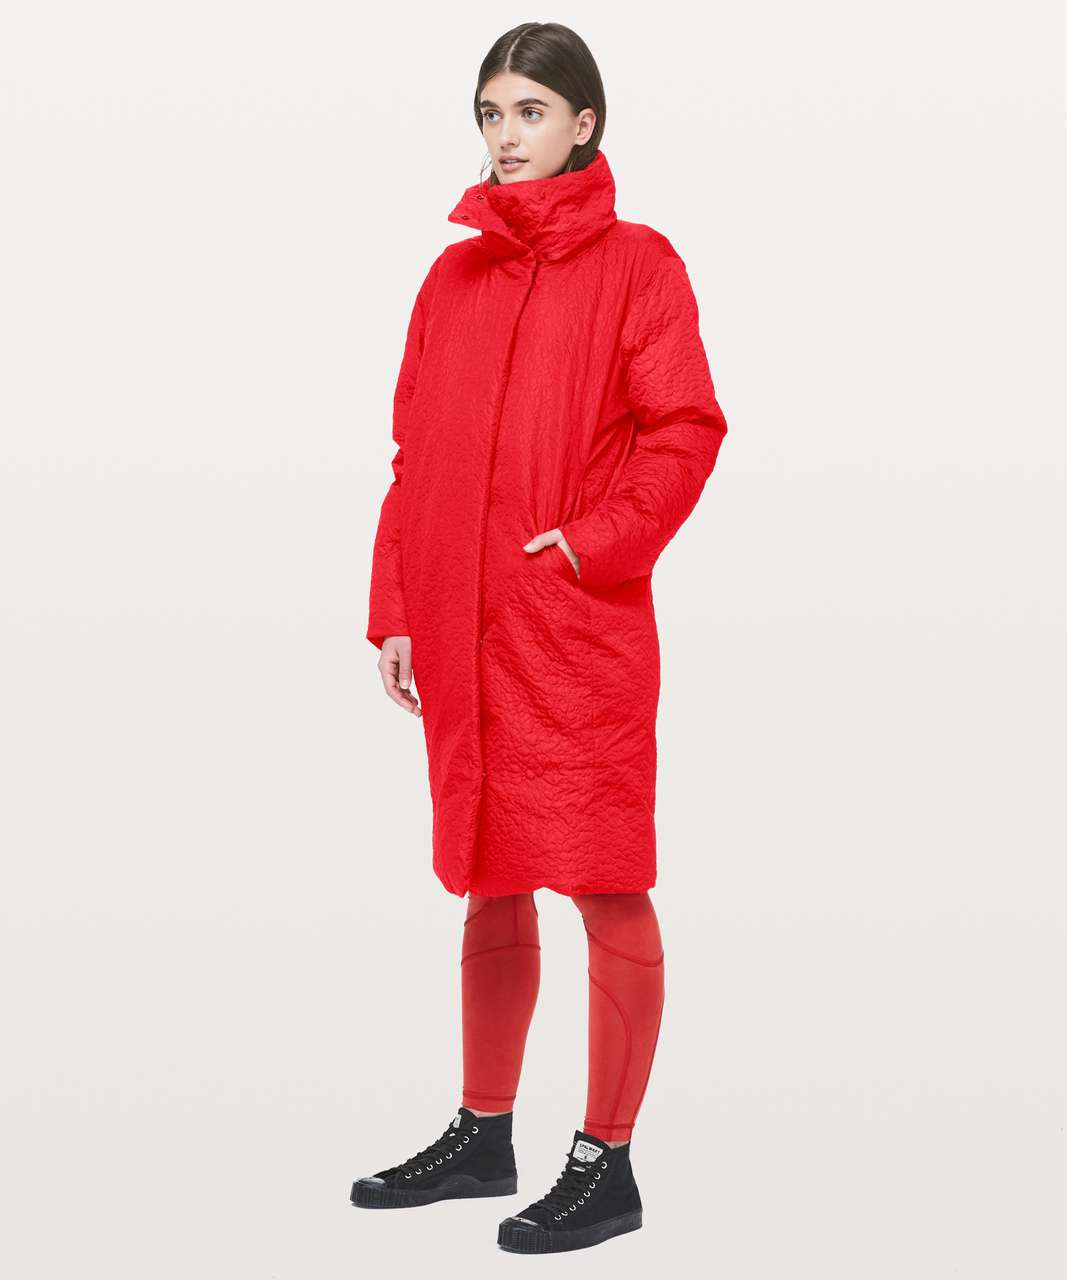 Lululemon Shiwa Long Puff - Fiery Red